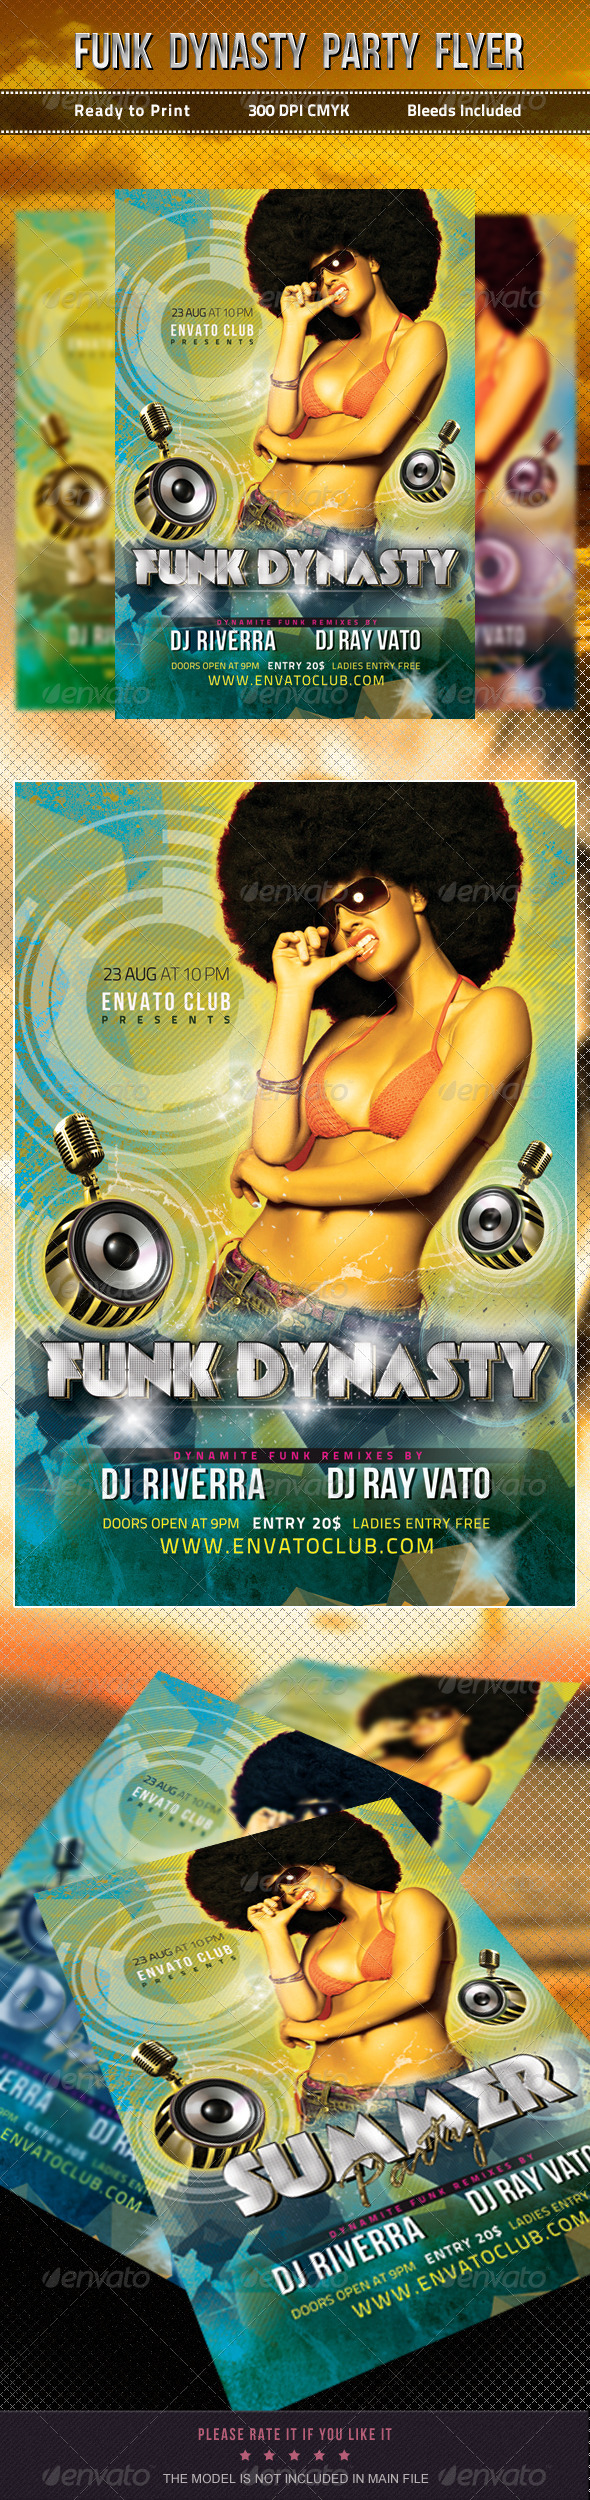 GraphicRiver Funk Dynasty Party Flyer 5189648